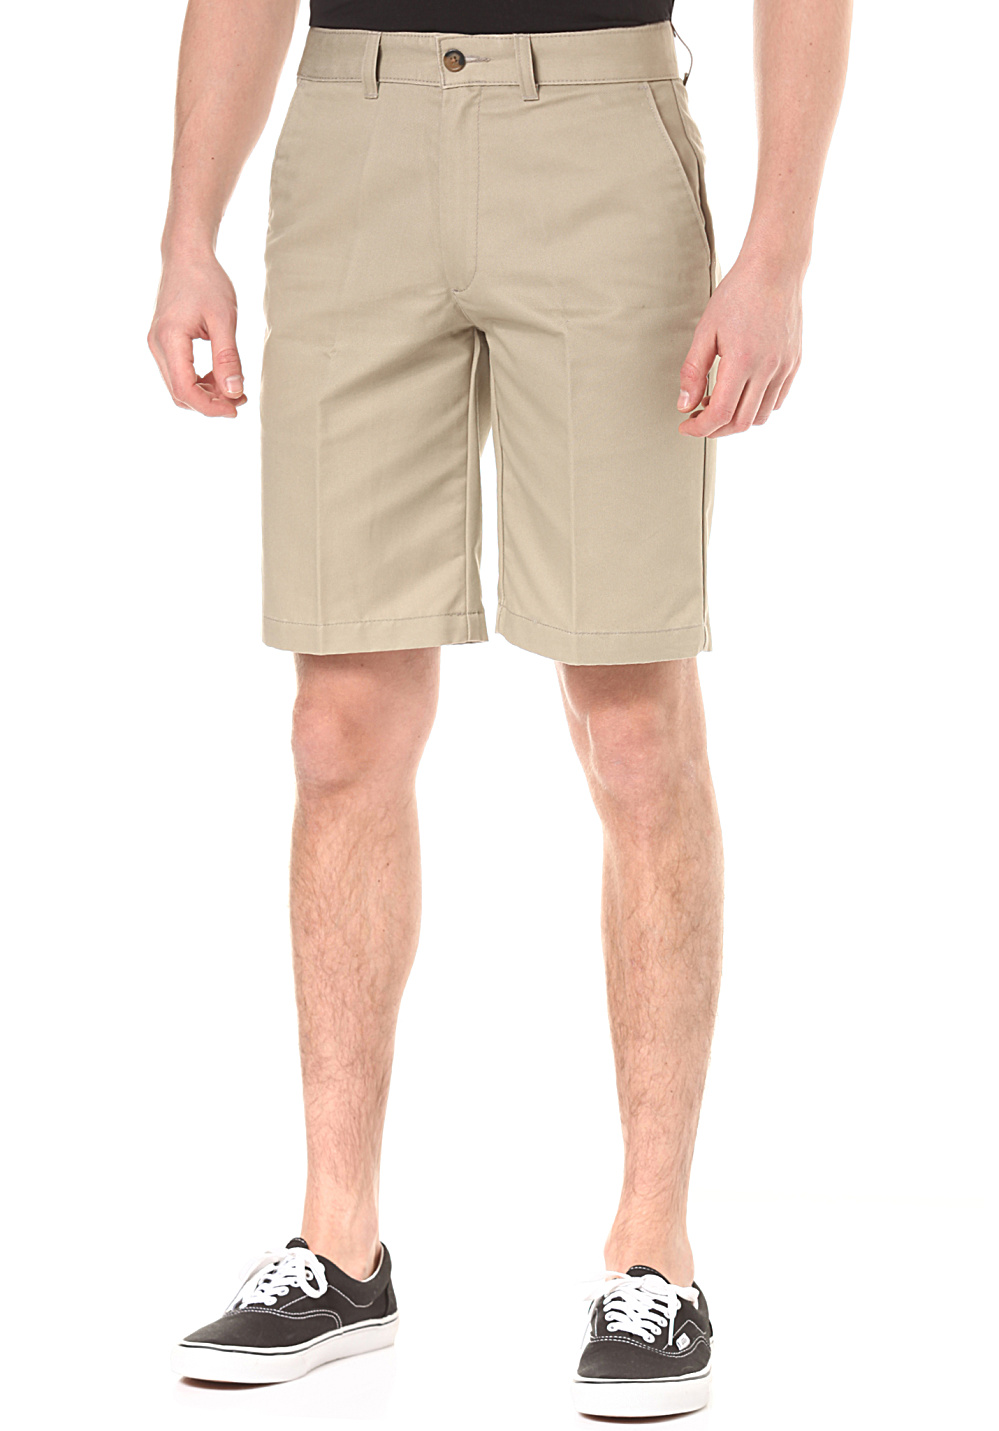 Sears has a great selection of men's shorts. Find the best men's shorts from the brands you love at Sears.